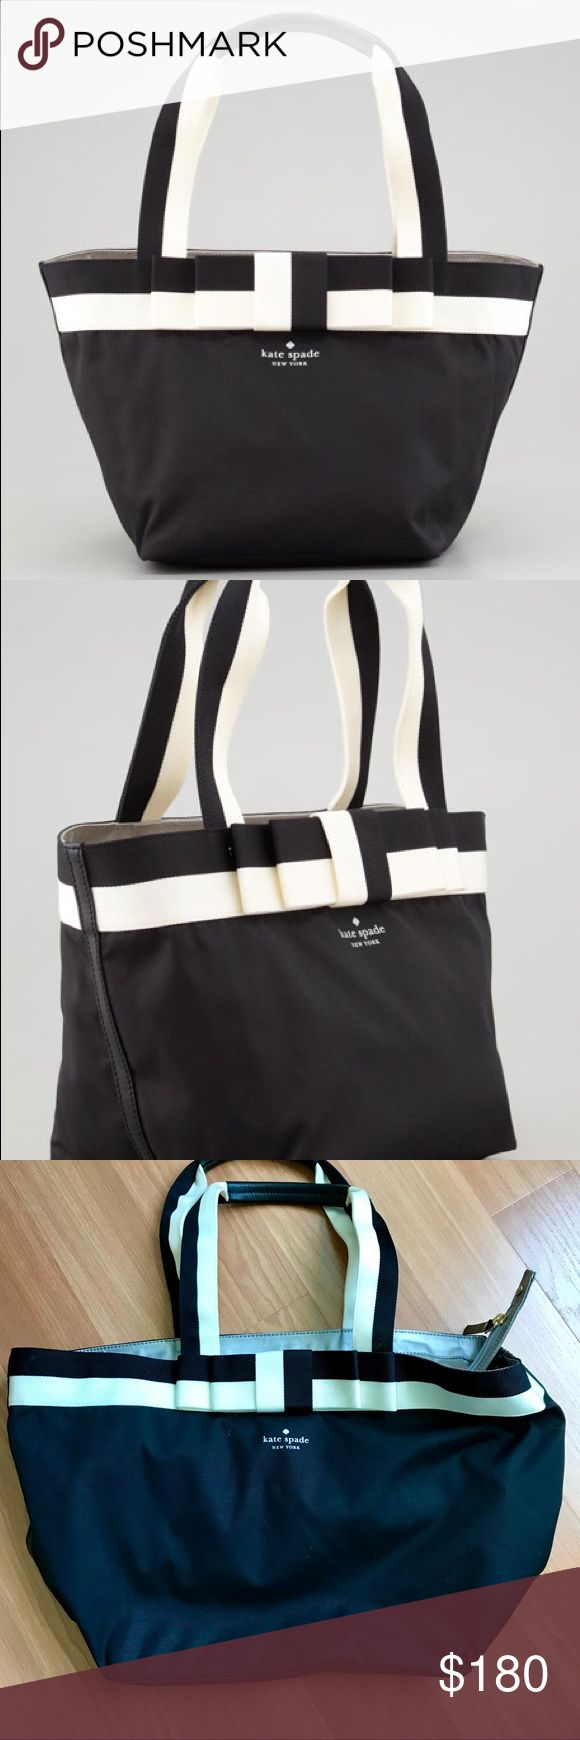 "Kate Spade Barrow Street Garri Tote Bag Snappy, classy, and stripy, this kate spade new york tote is suitable for your daily dress codes—whether smart-casual or business.  -Packable, durable nylon; leather trim and golden hardware. -Striped trim forms flat center bow; printed logo. -Tote handles feature leather strips. -Zip top secures flat metallic top. -Inside features one zip pocket. -Flat bottom. -9""H x 13""W x 8""D; weighs 8oz. kate spade Bags Totes"